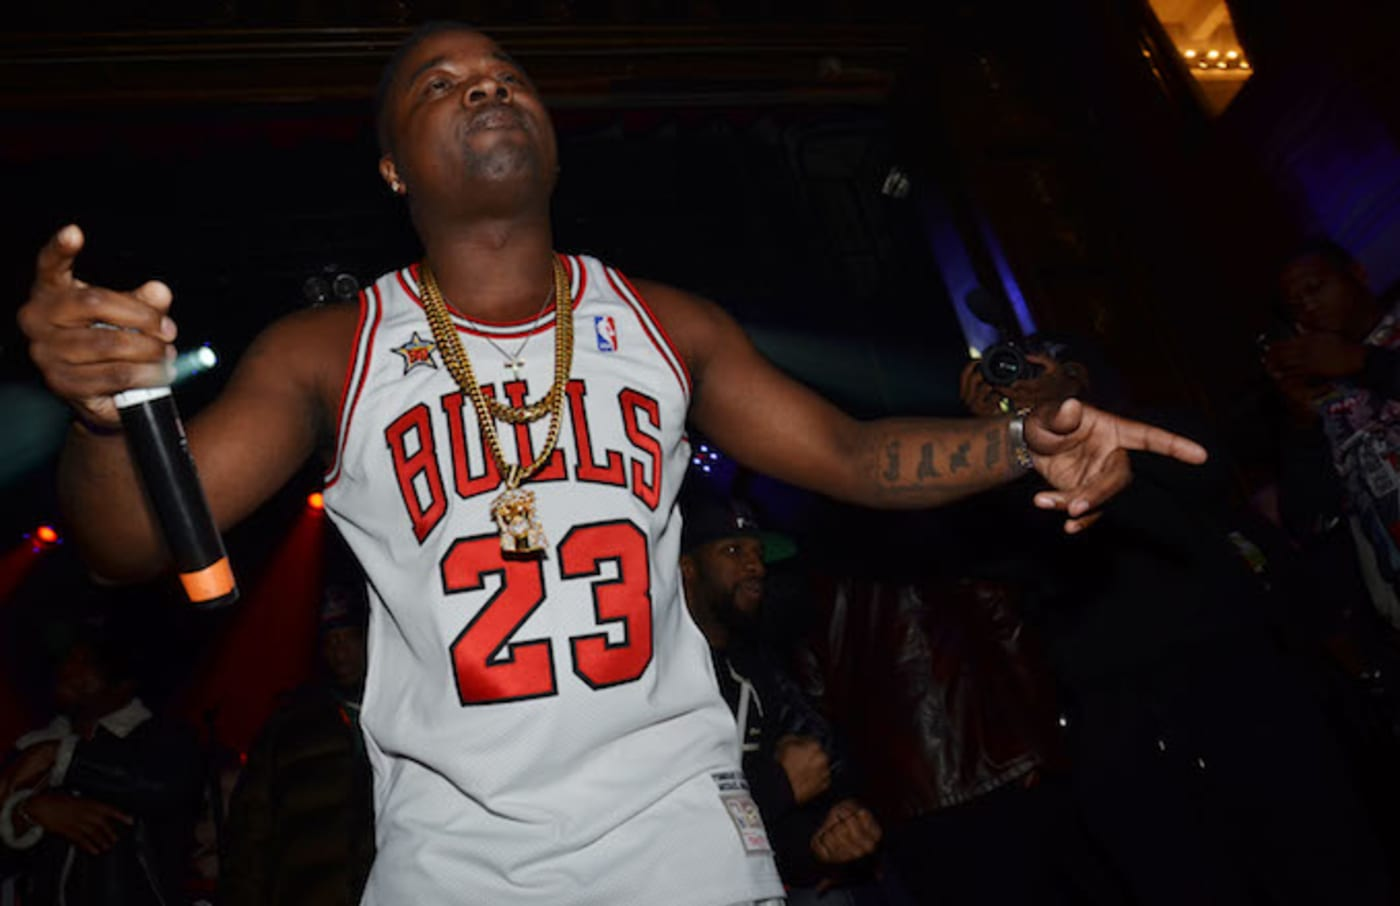 Troy Ave performs at the Best Ever After Party.